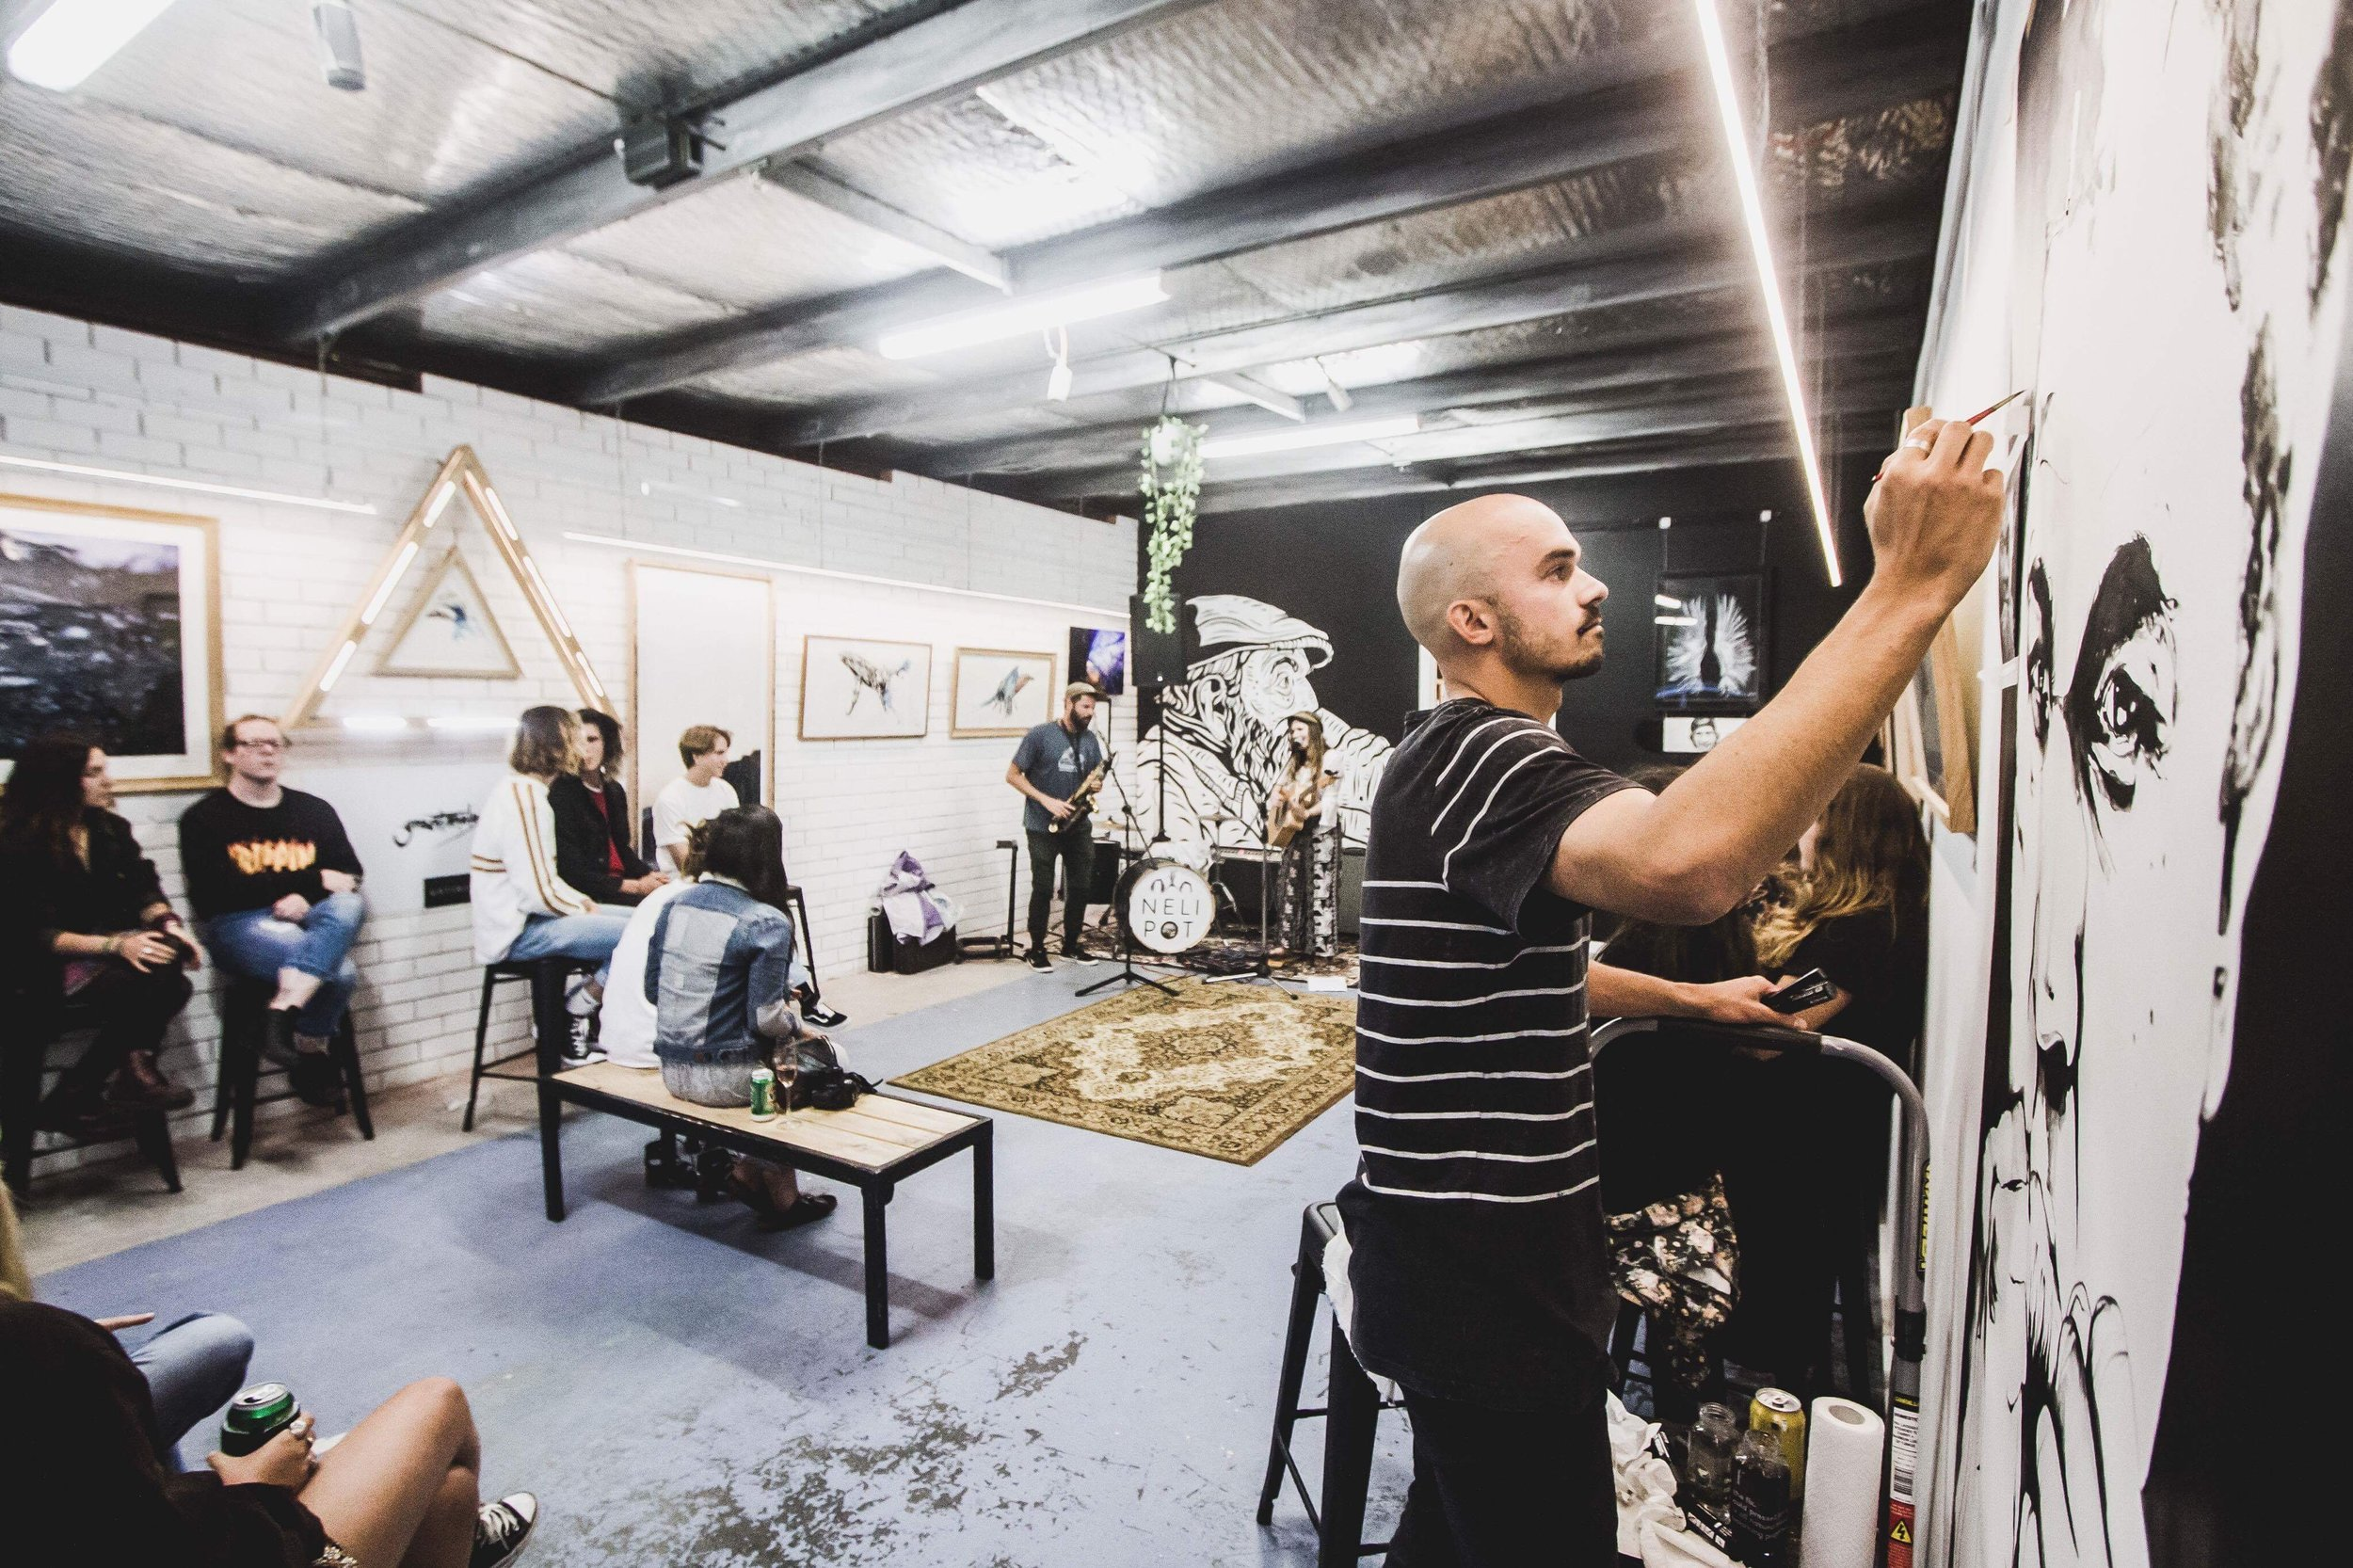 Grant Moloney art space & live art Photo: @haydenseyes